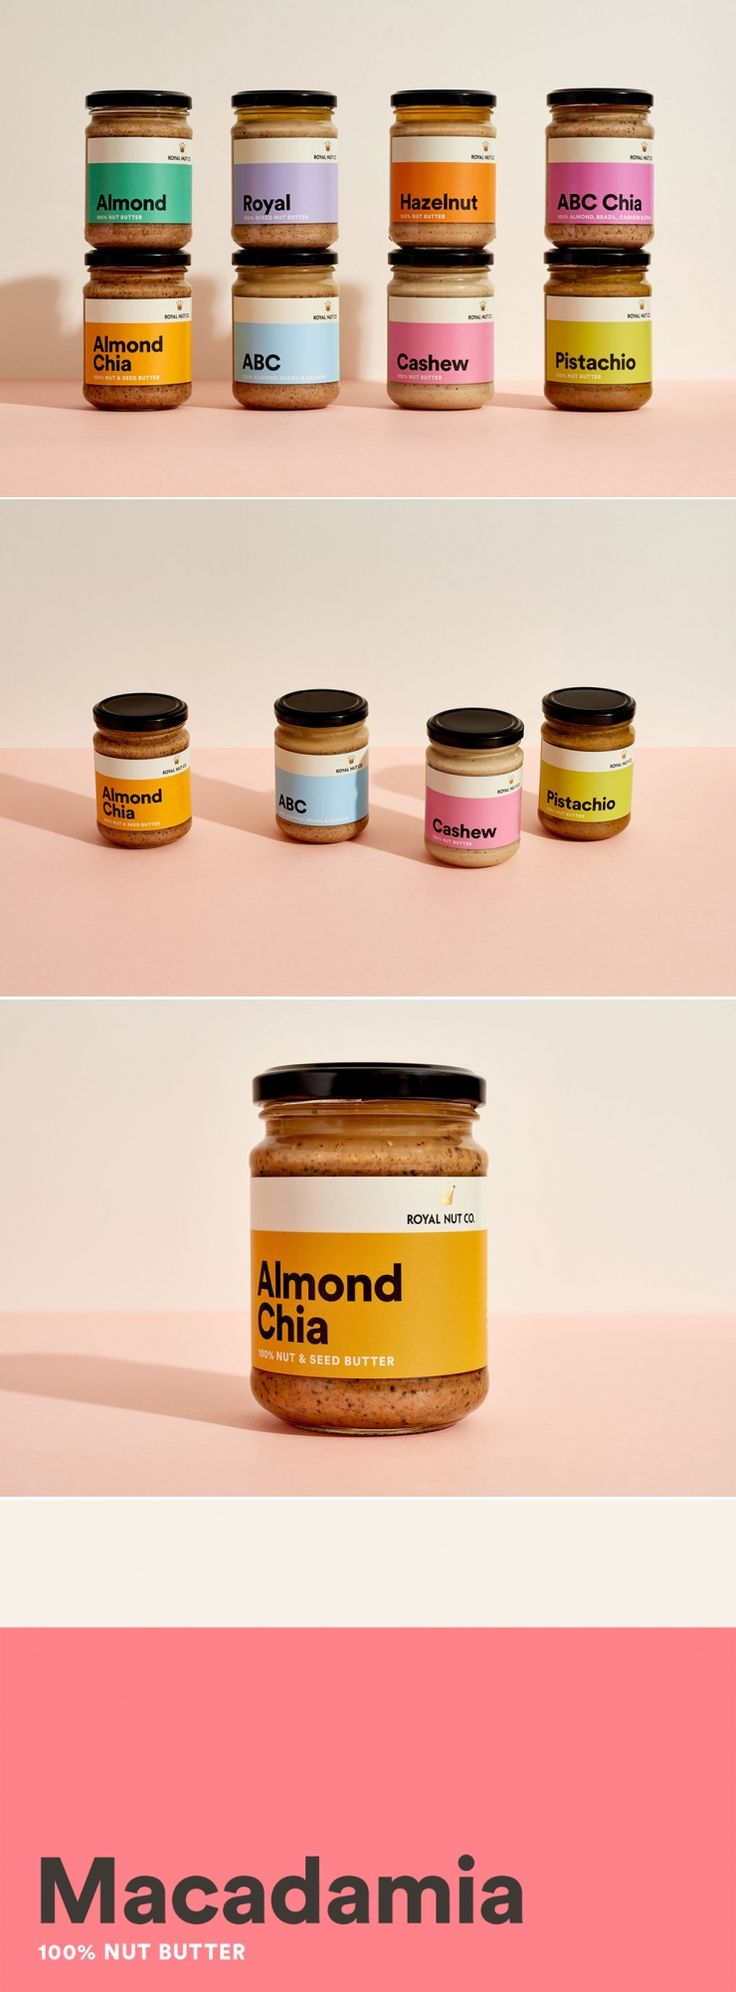 Royal Nut Co. - The Butter of Designers — The Dieline - Branding & Packaging Design